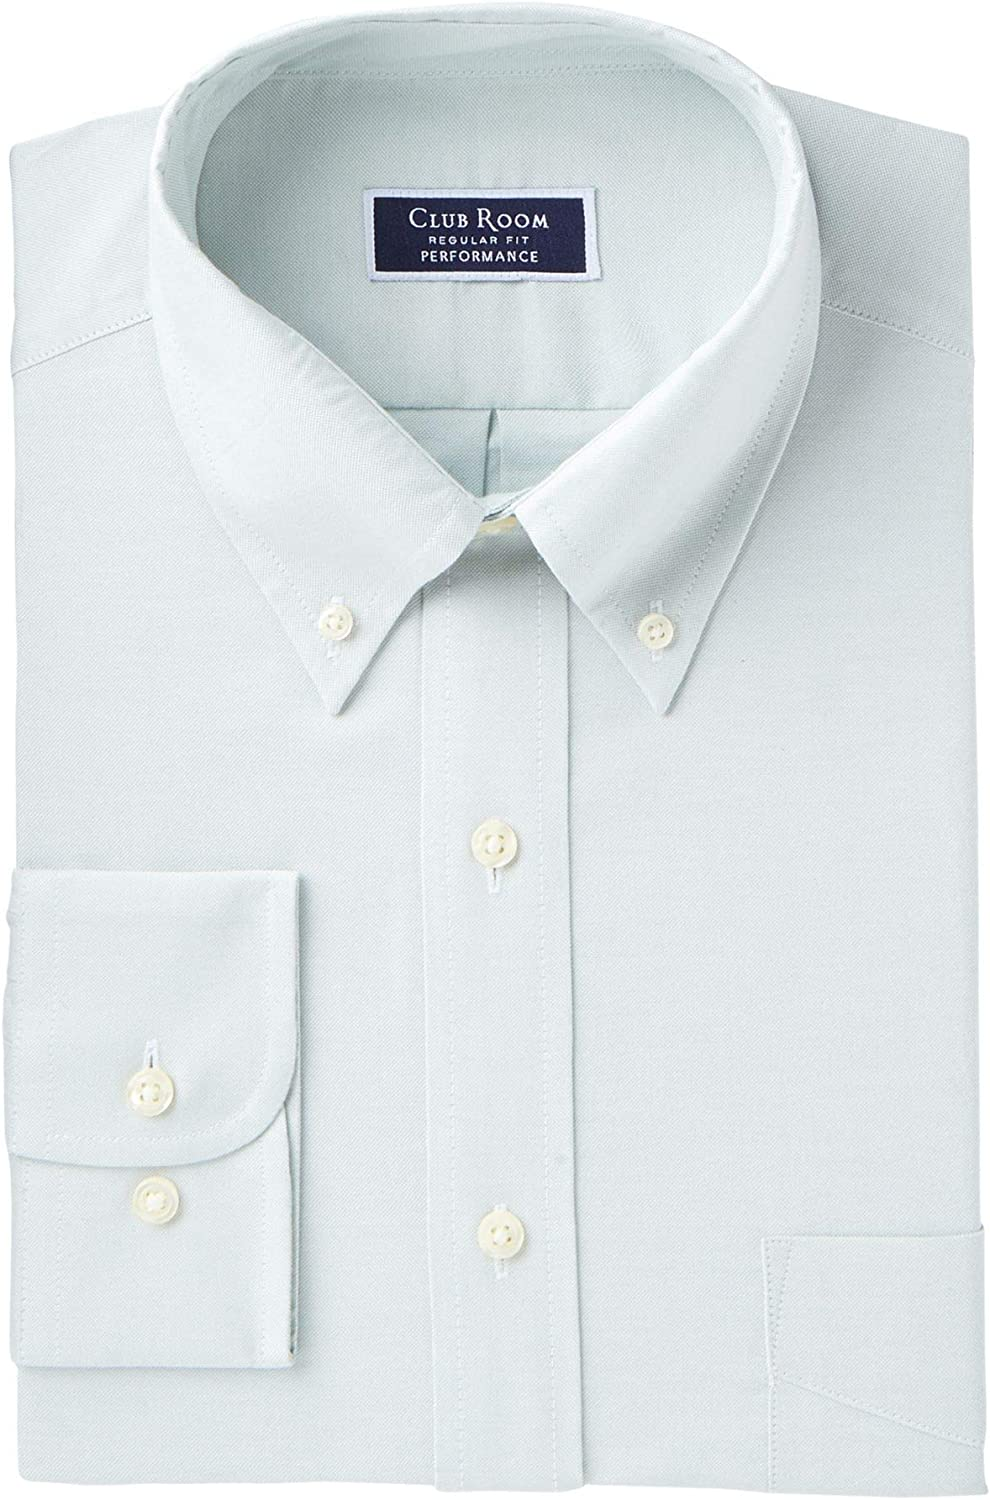 Club Room Men's Classic/Regular Fit Performance Easy-Care Oxford Solid Dress Shirt